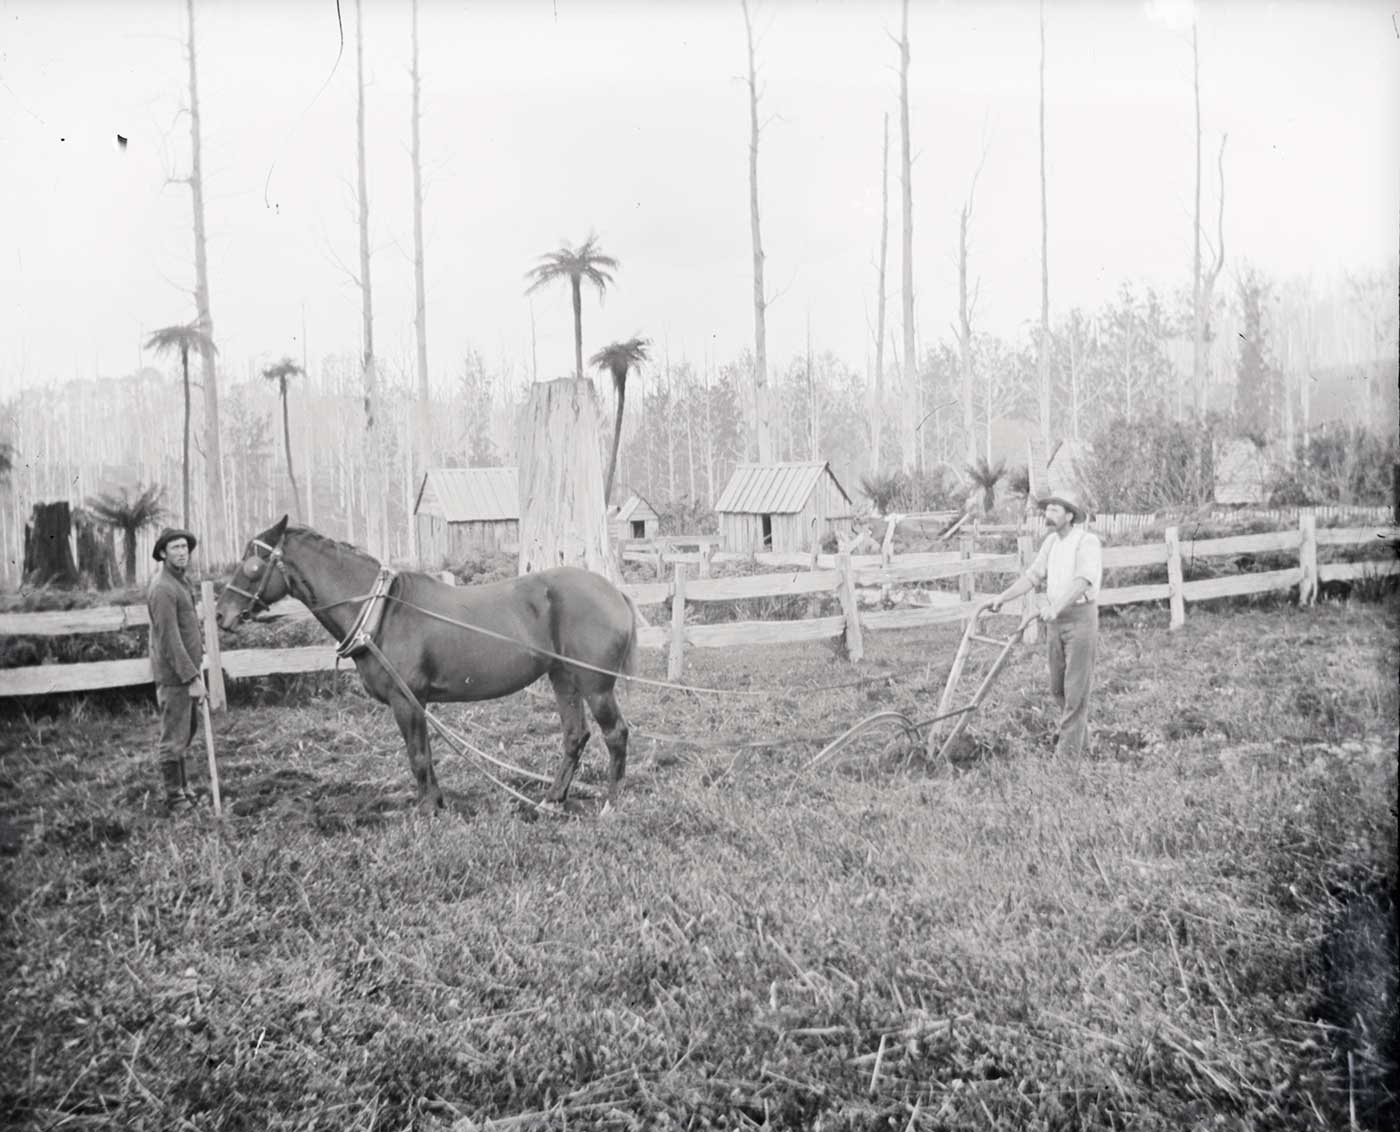 A photographic glass plate negative showing two men using a horse-drawn plough to till a field. In the background is a wooden fence, a large thick tree stump, and wooden buildings set amongst tall ferns. There is a slight yellow discolouration on the right side of the image. - click to view larger image